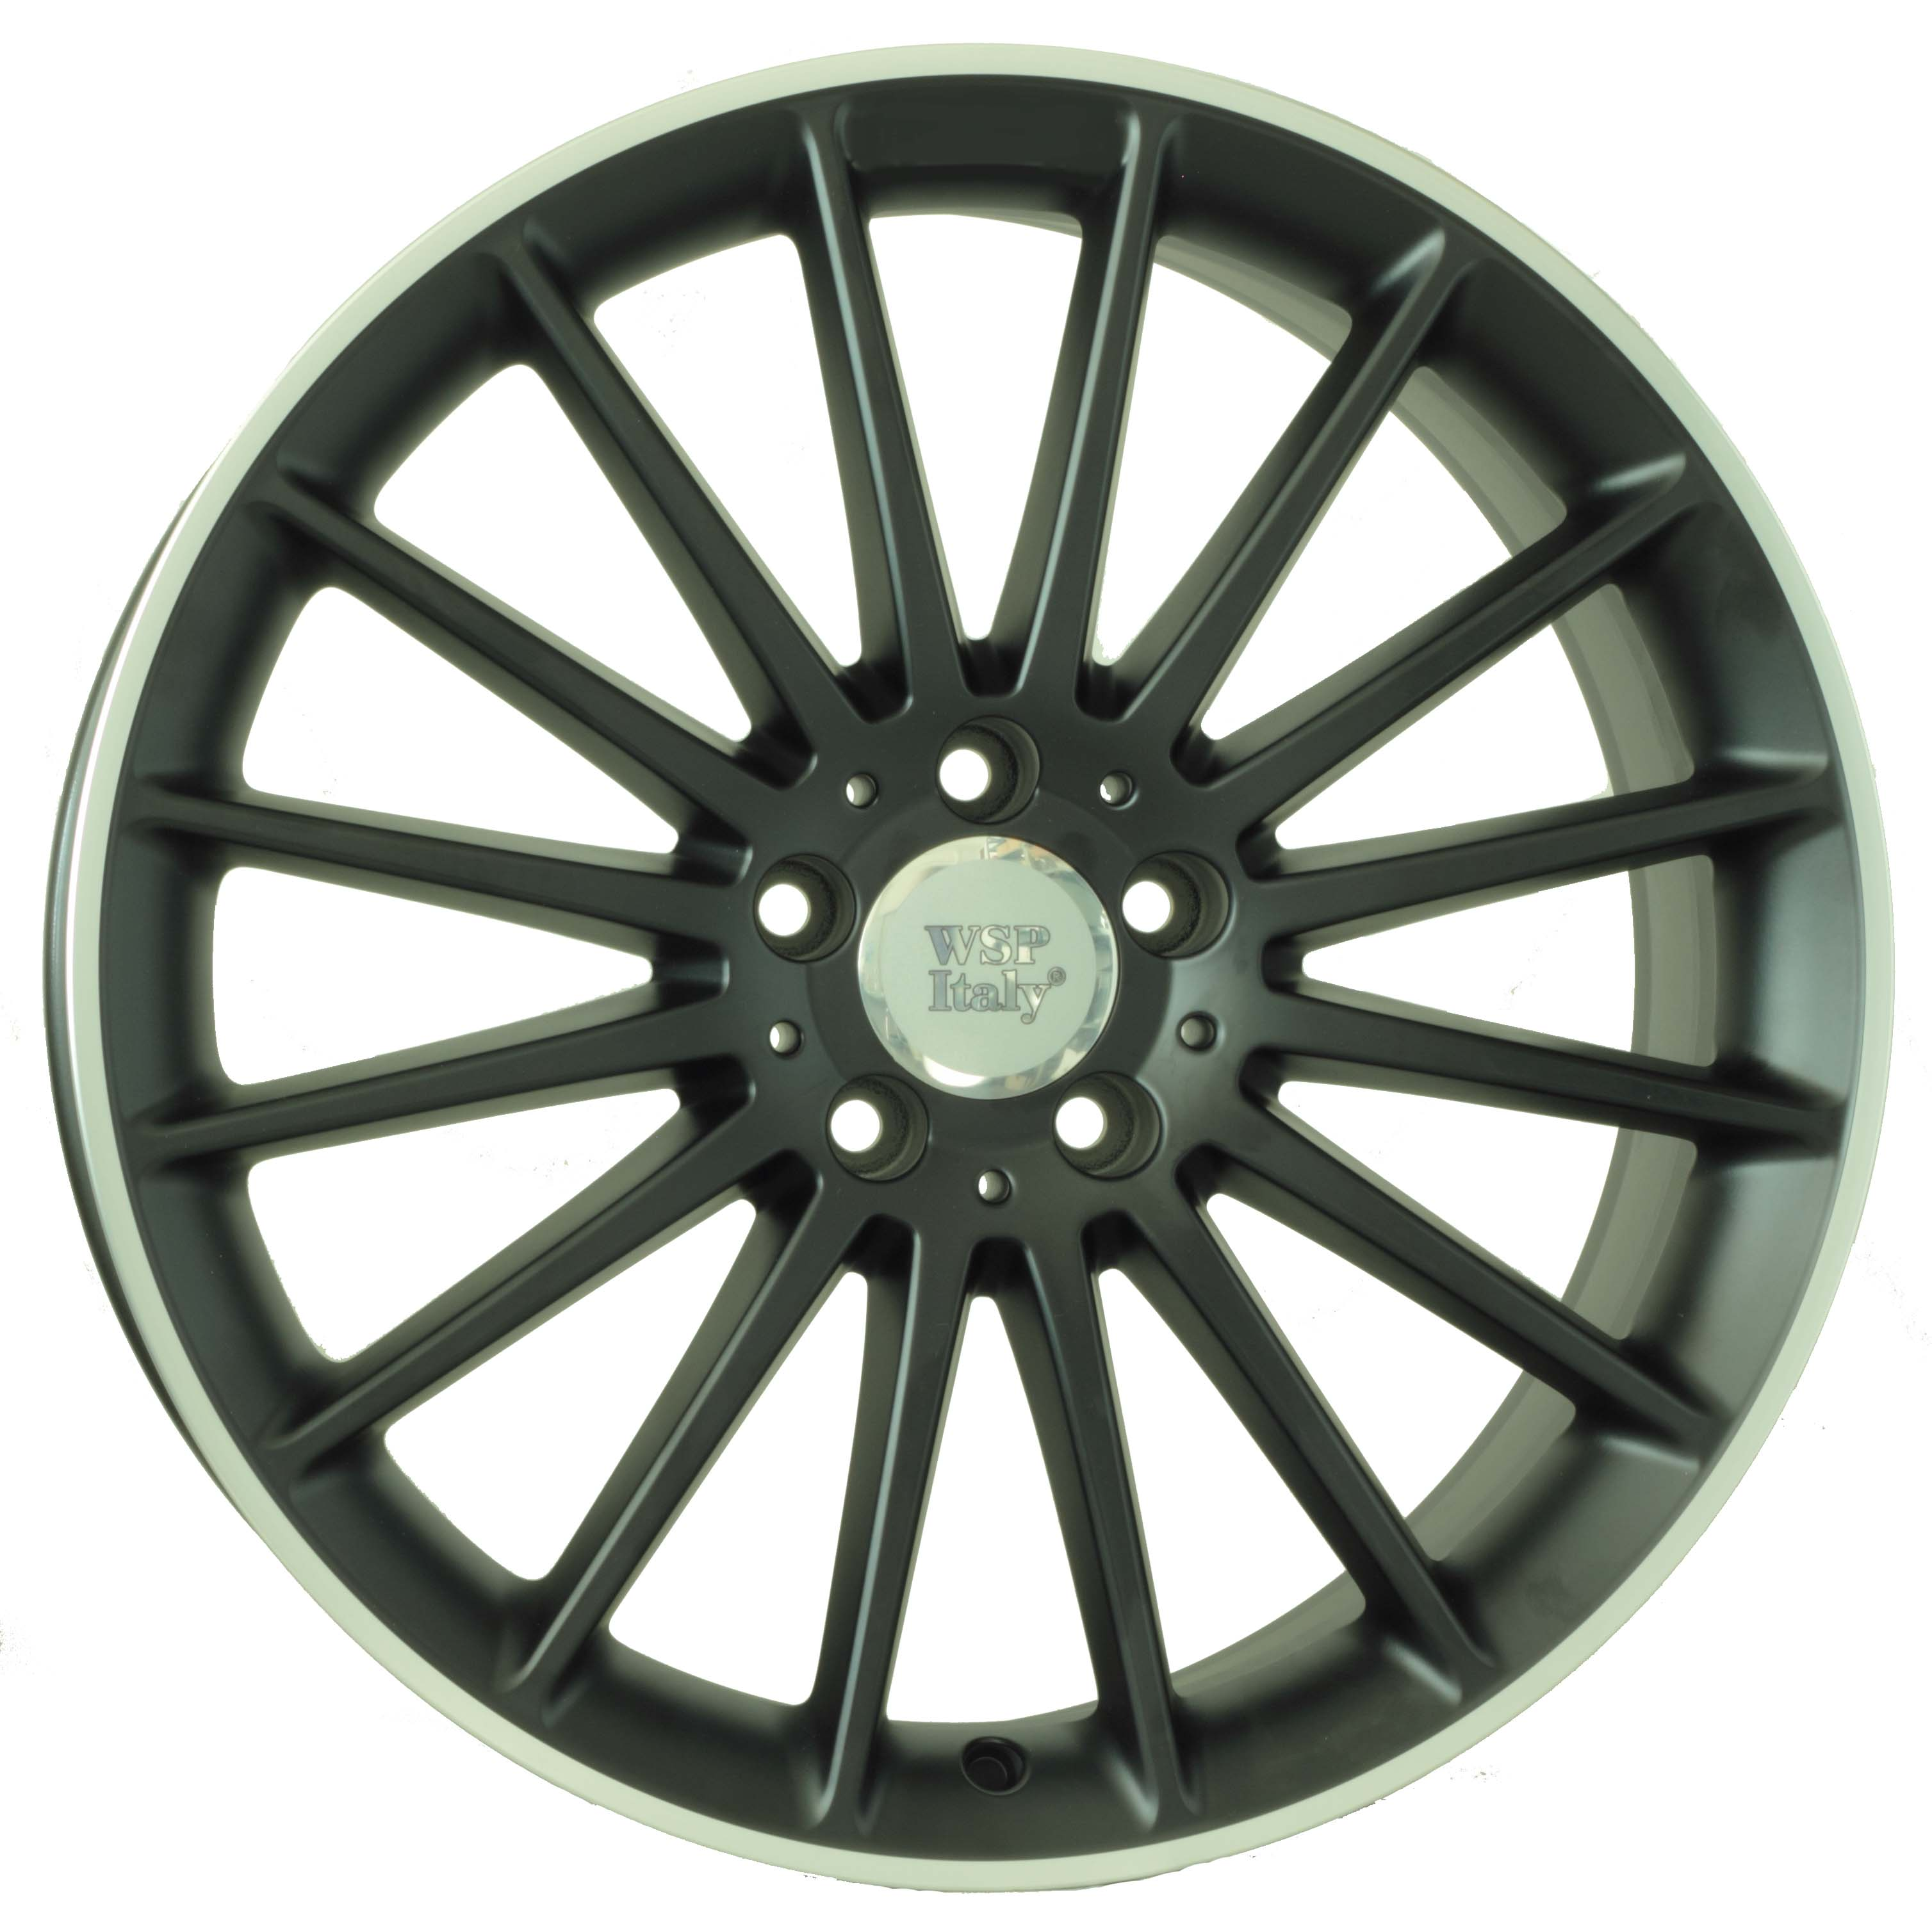 WSP Italy SHANGHAI W773 8.5x19/5X112 D66.6 ET44 Dull Black Polished